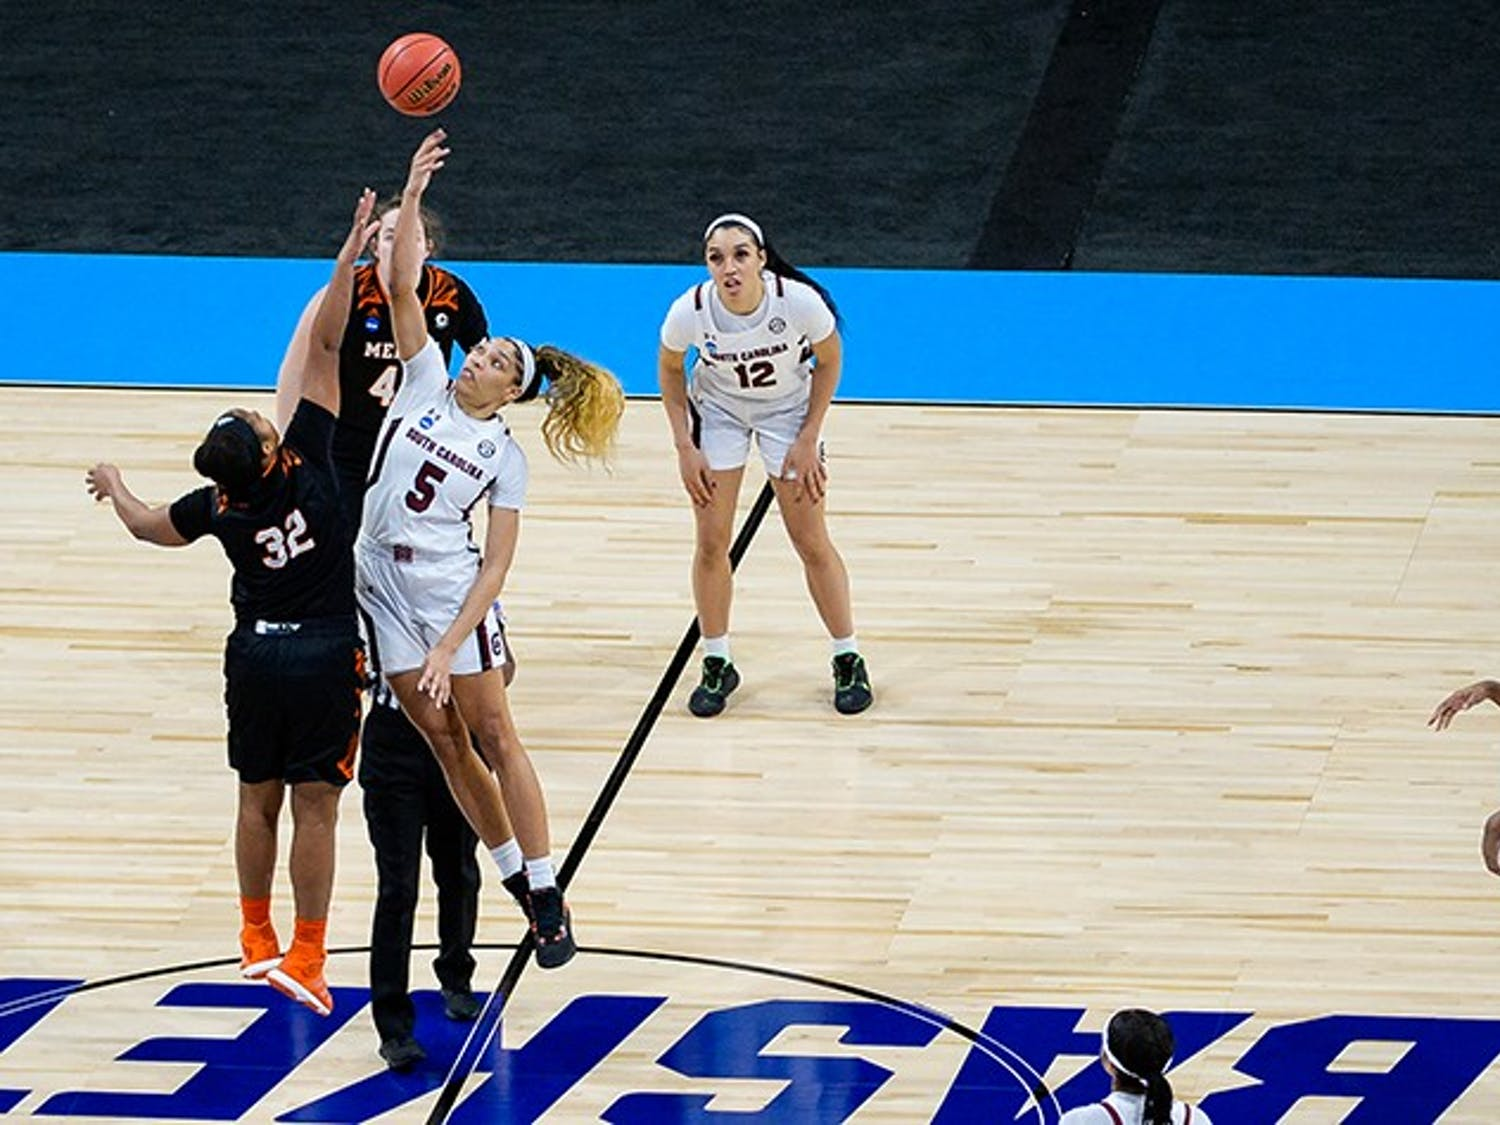 Junior forward Victaria Saxton jumps next to a Mercer player and tries to tip the ball to her fellow teammates. South Carolina beat Mercer in the NCAA Tournament 79-53.